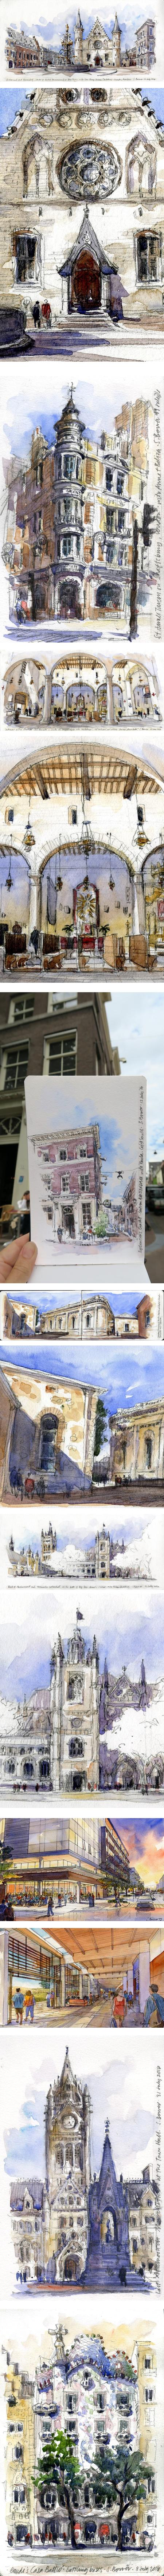 Stephanie Bower, urban sketcher, architectural watercolor illustration